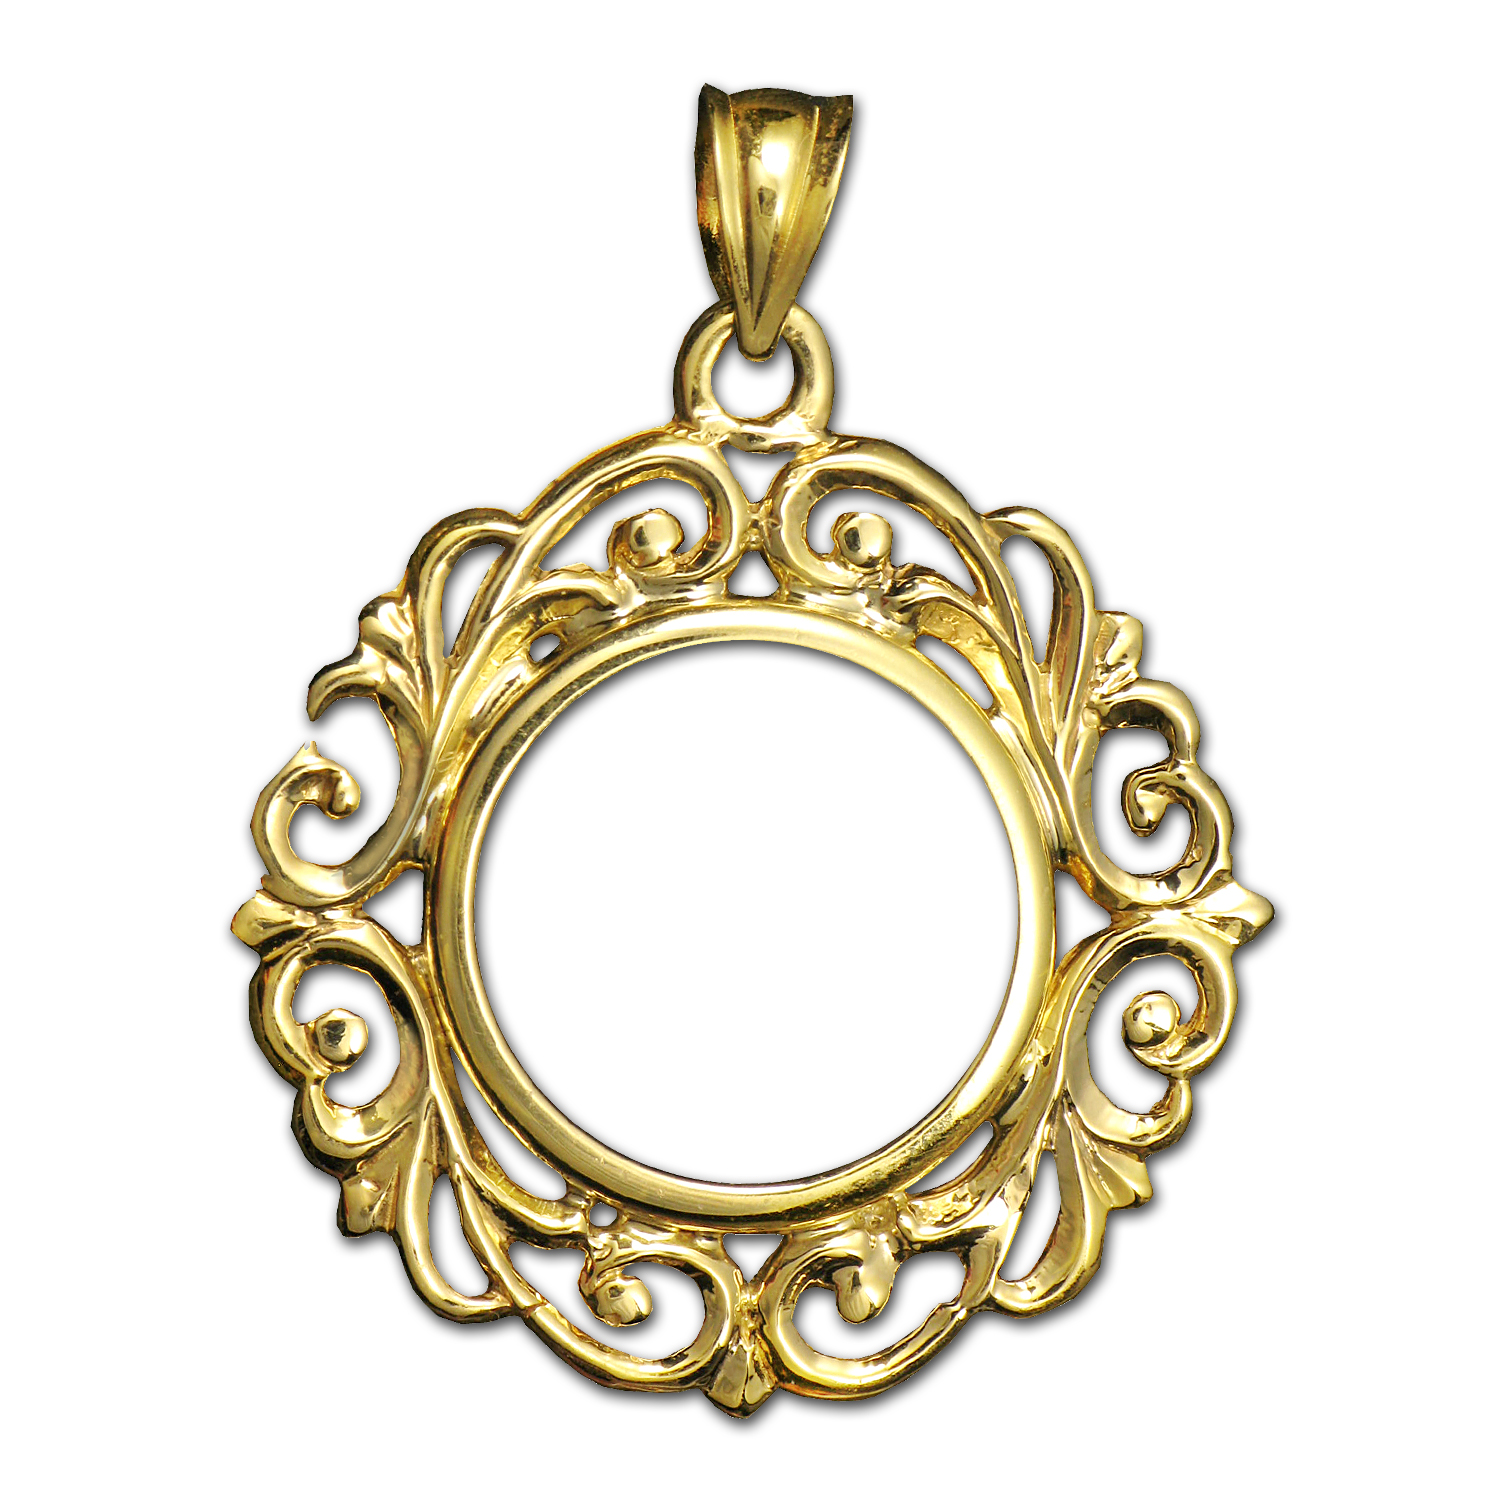 14K Gold Prong Fancy Filigree Coin Bezel - 14 mm